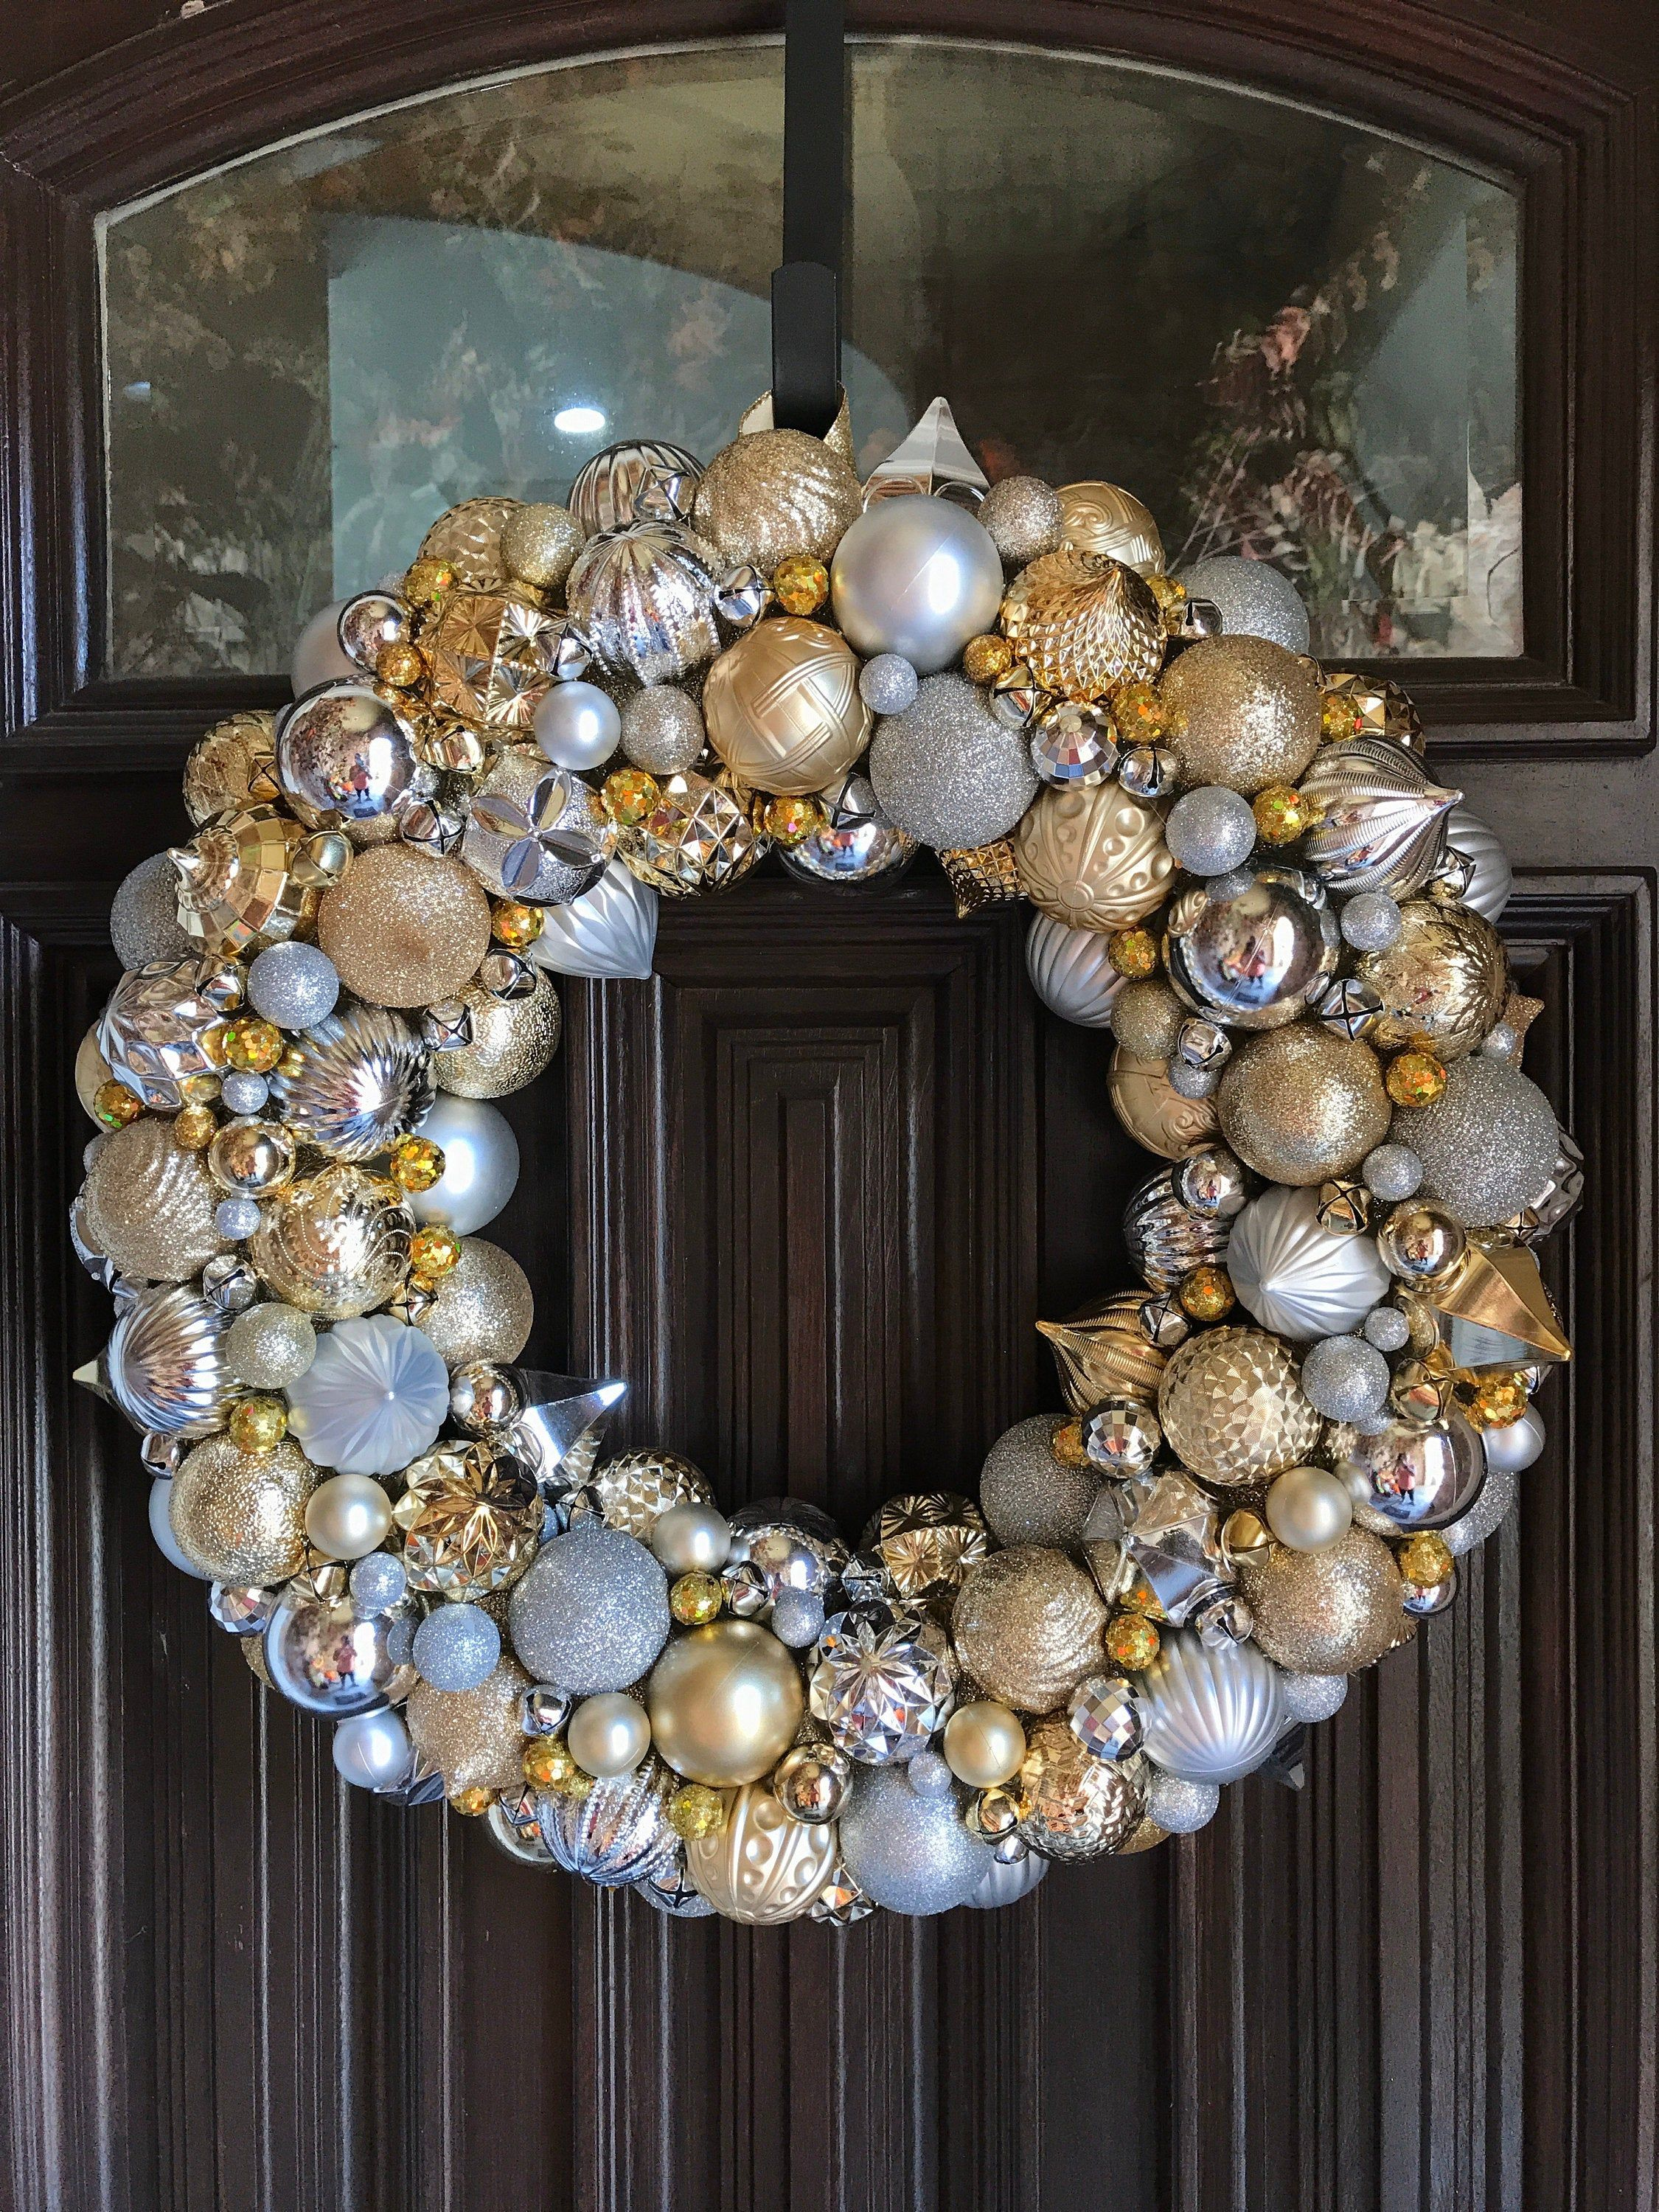 Gorgeous Silver And Gold Ornament Christmas Wreath Bauble Etsy In 2020 Bauble Wreath Christmas Wreaths Gold Christmas Ornaments